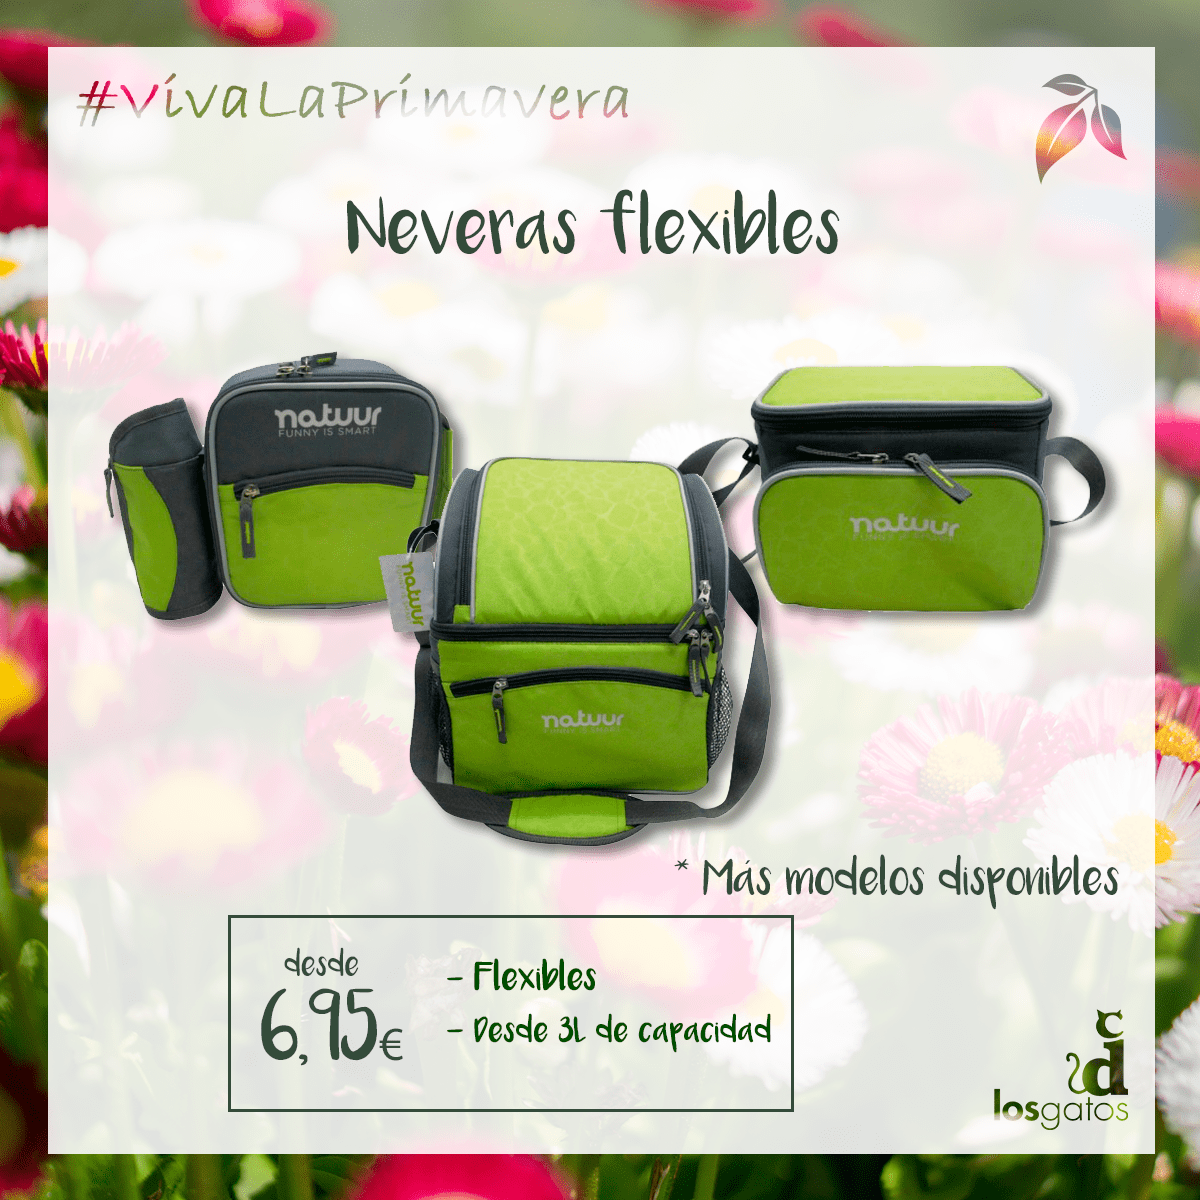 Neveras de tela flexibles